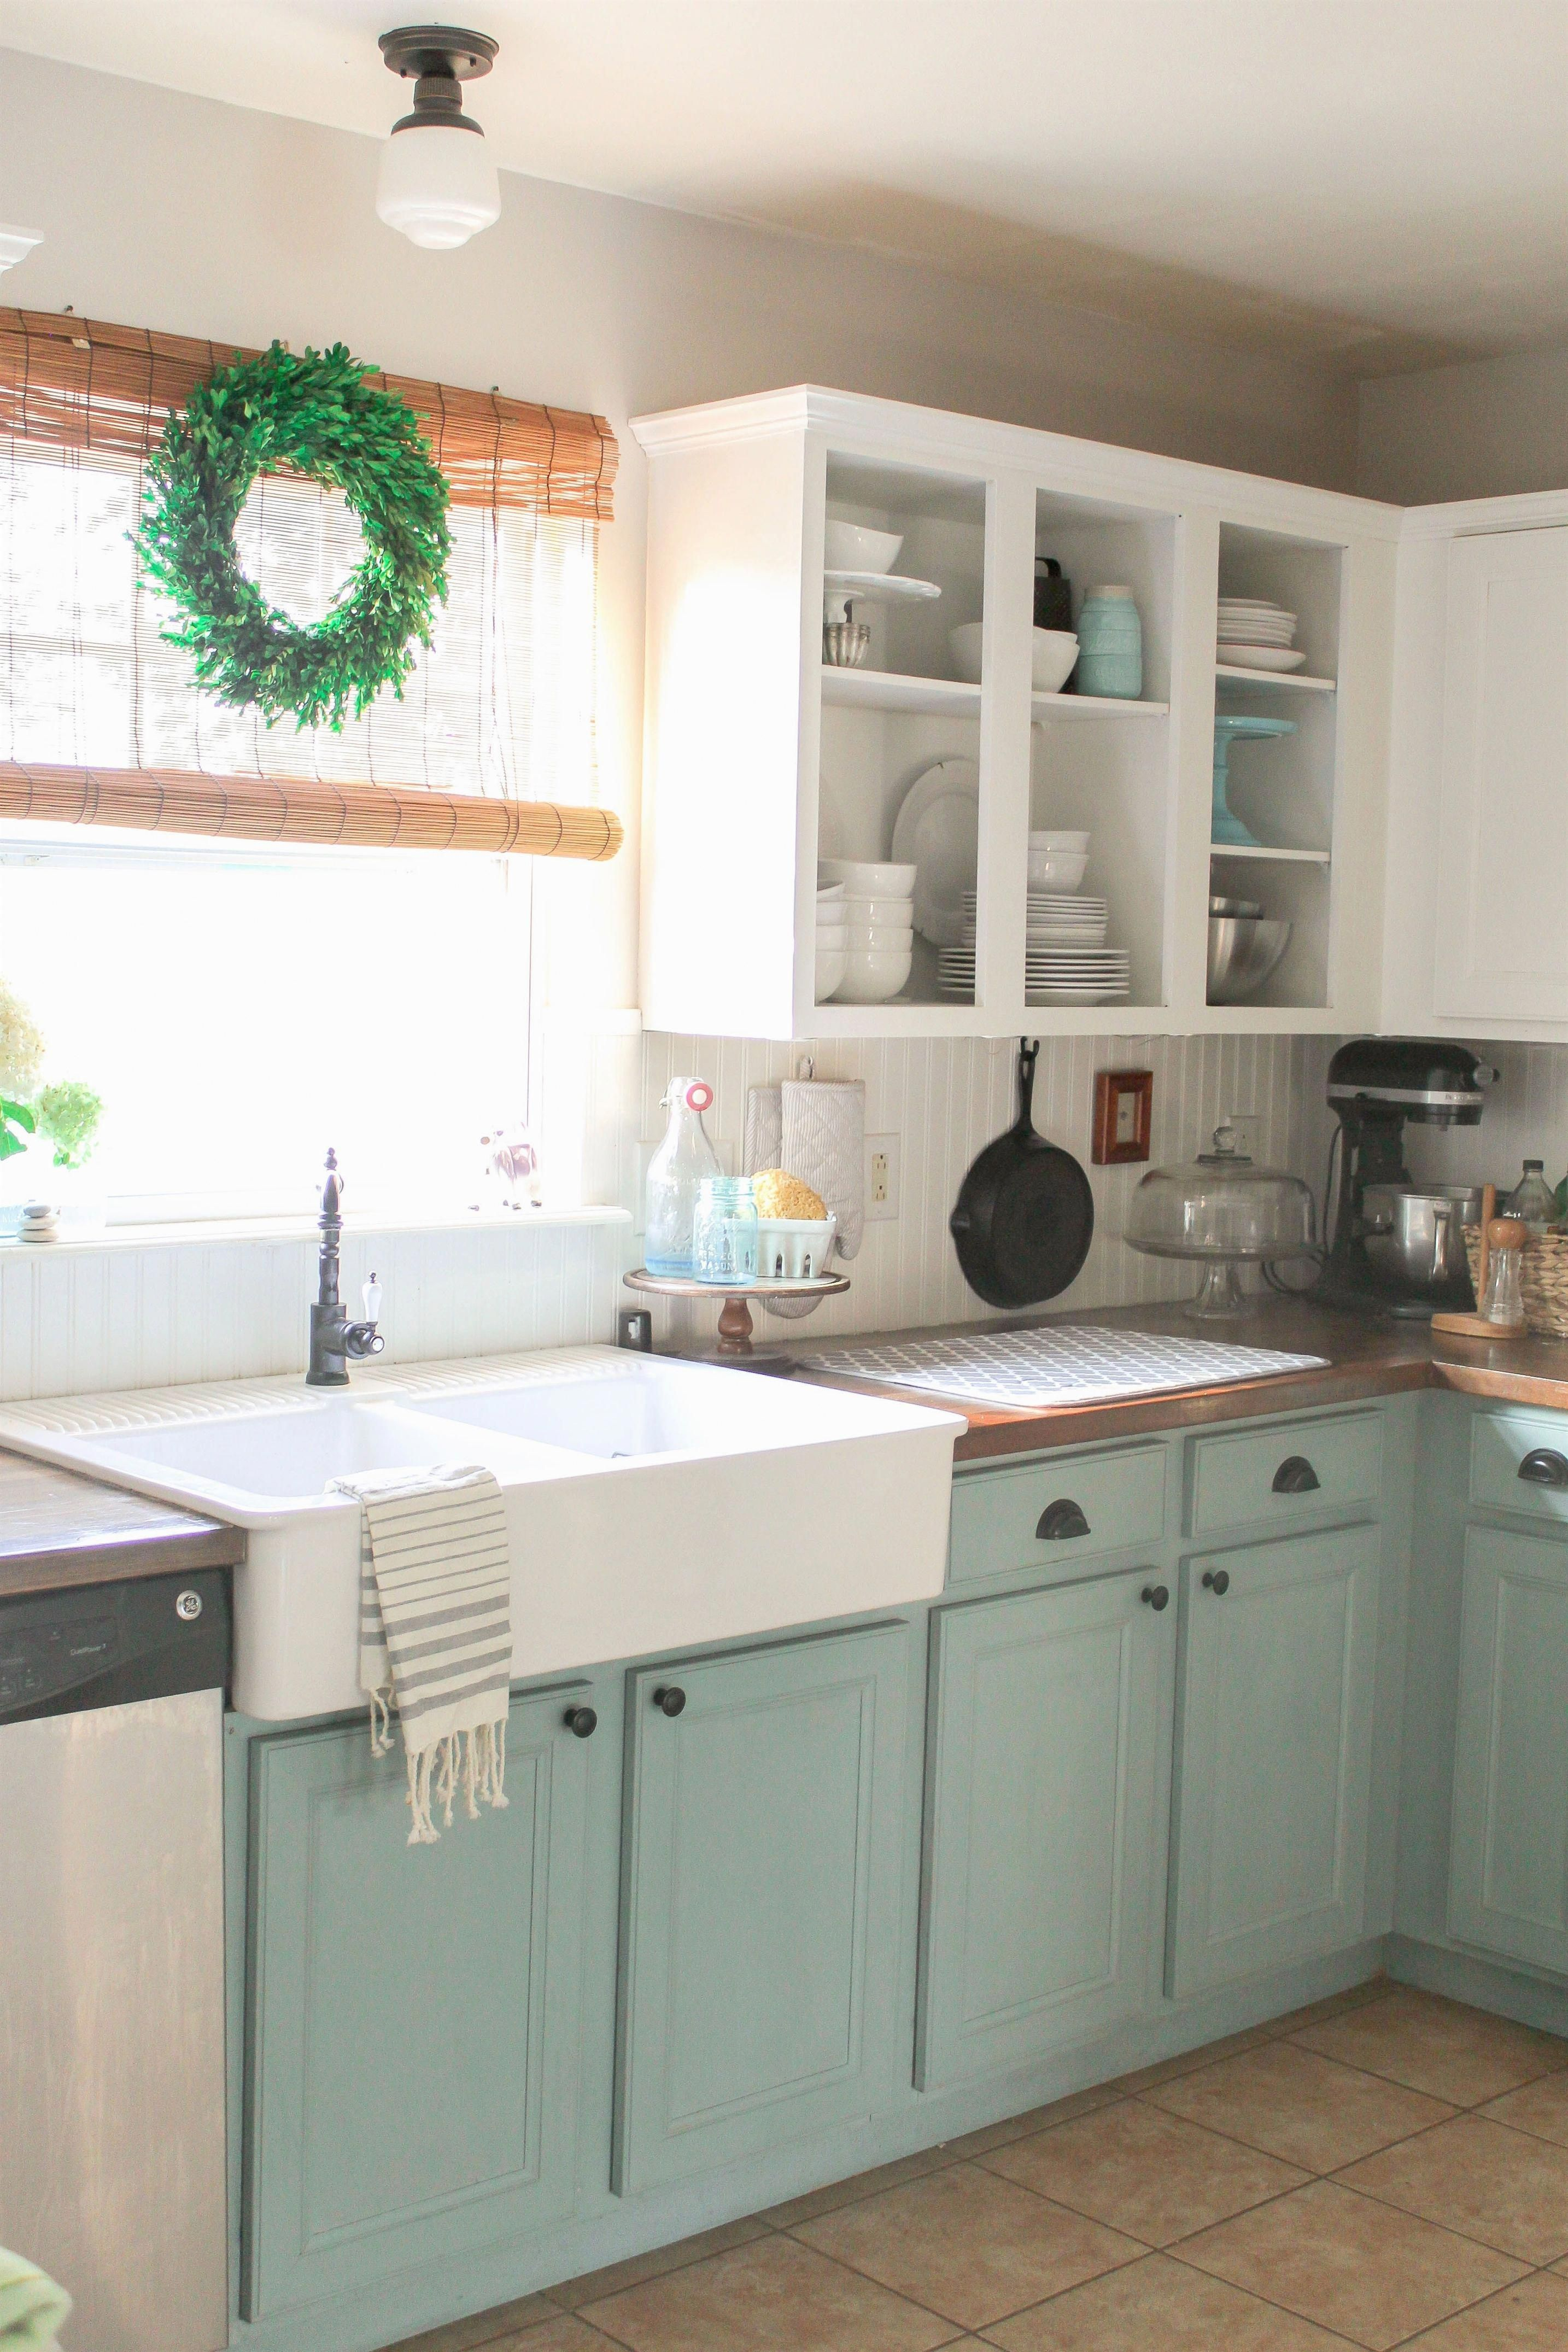 Chalk Painted Kitchen Cabinets: 2 Years Later in 2020 ...